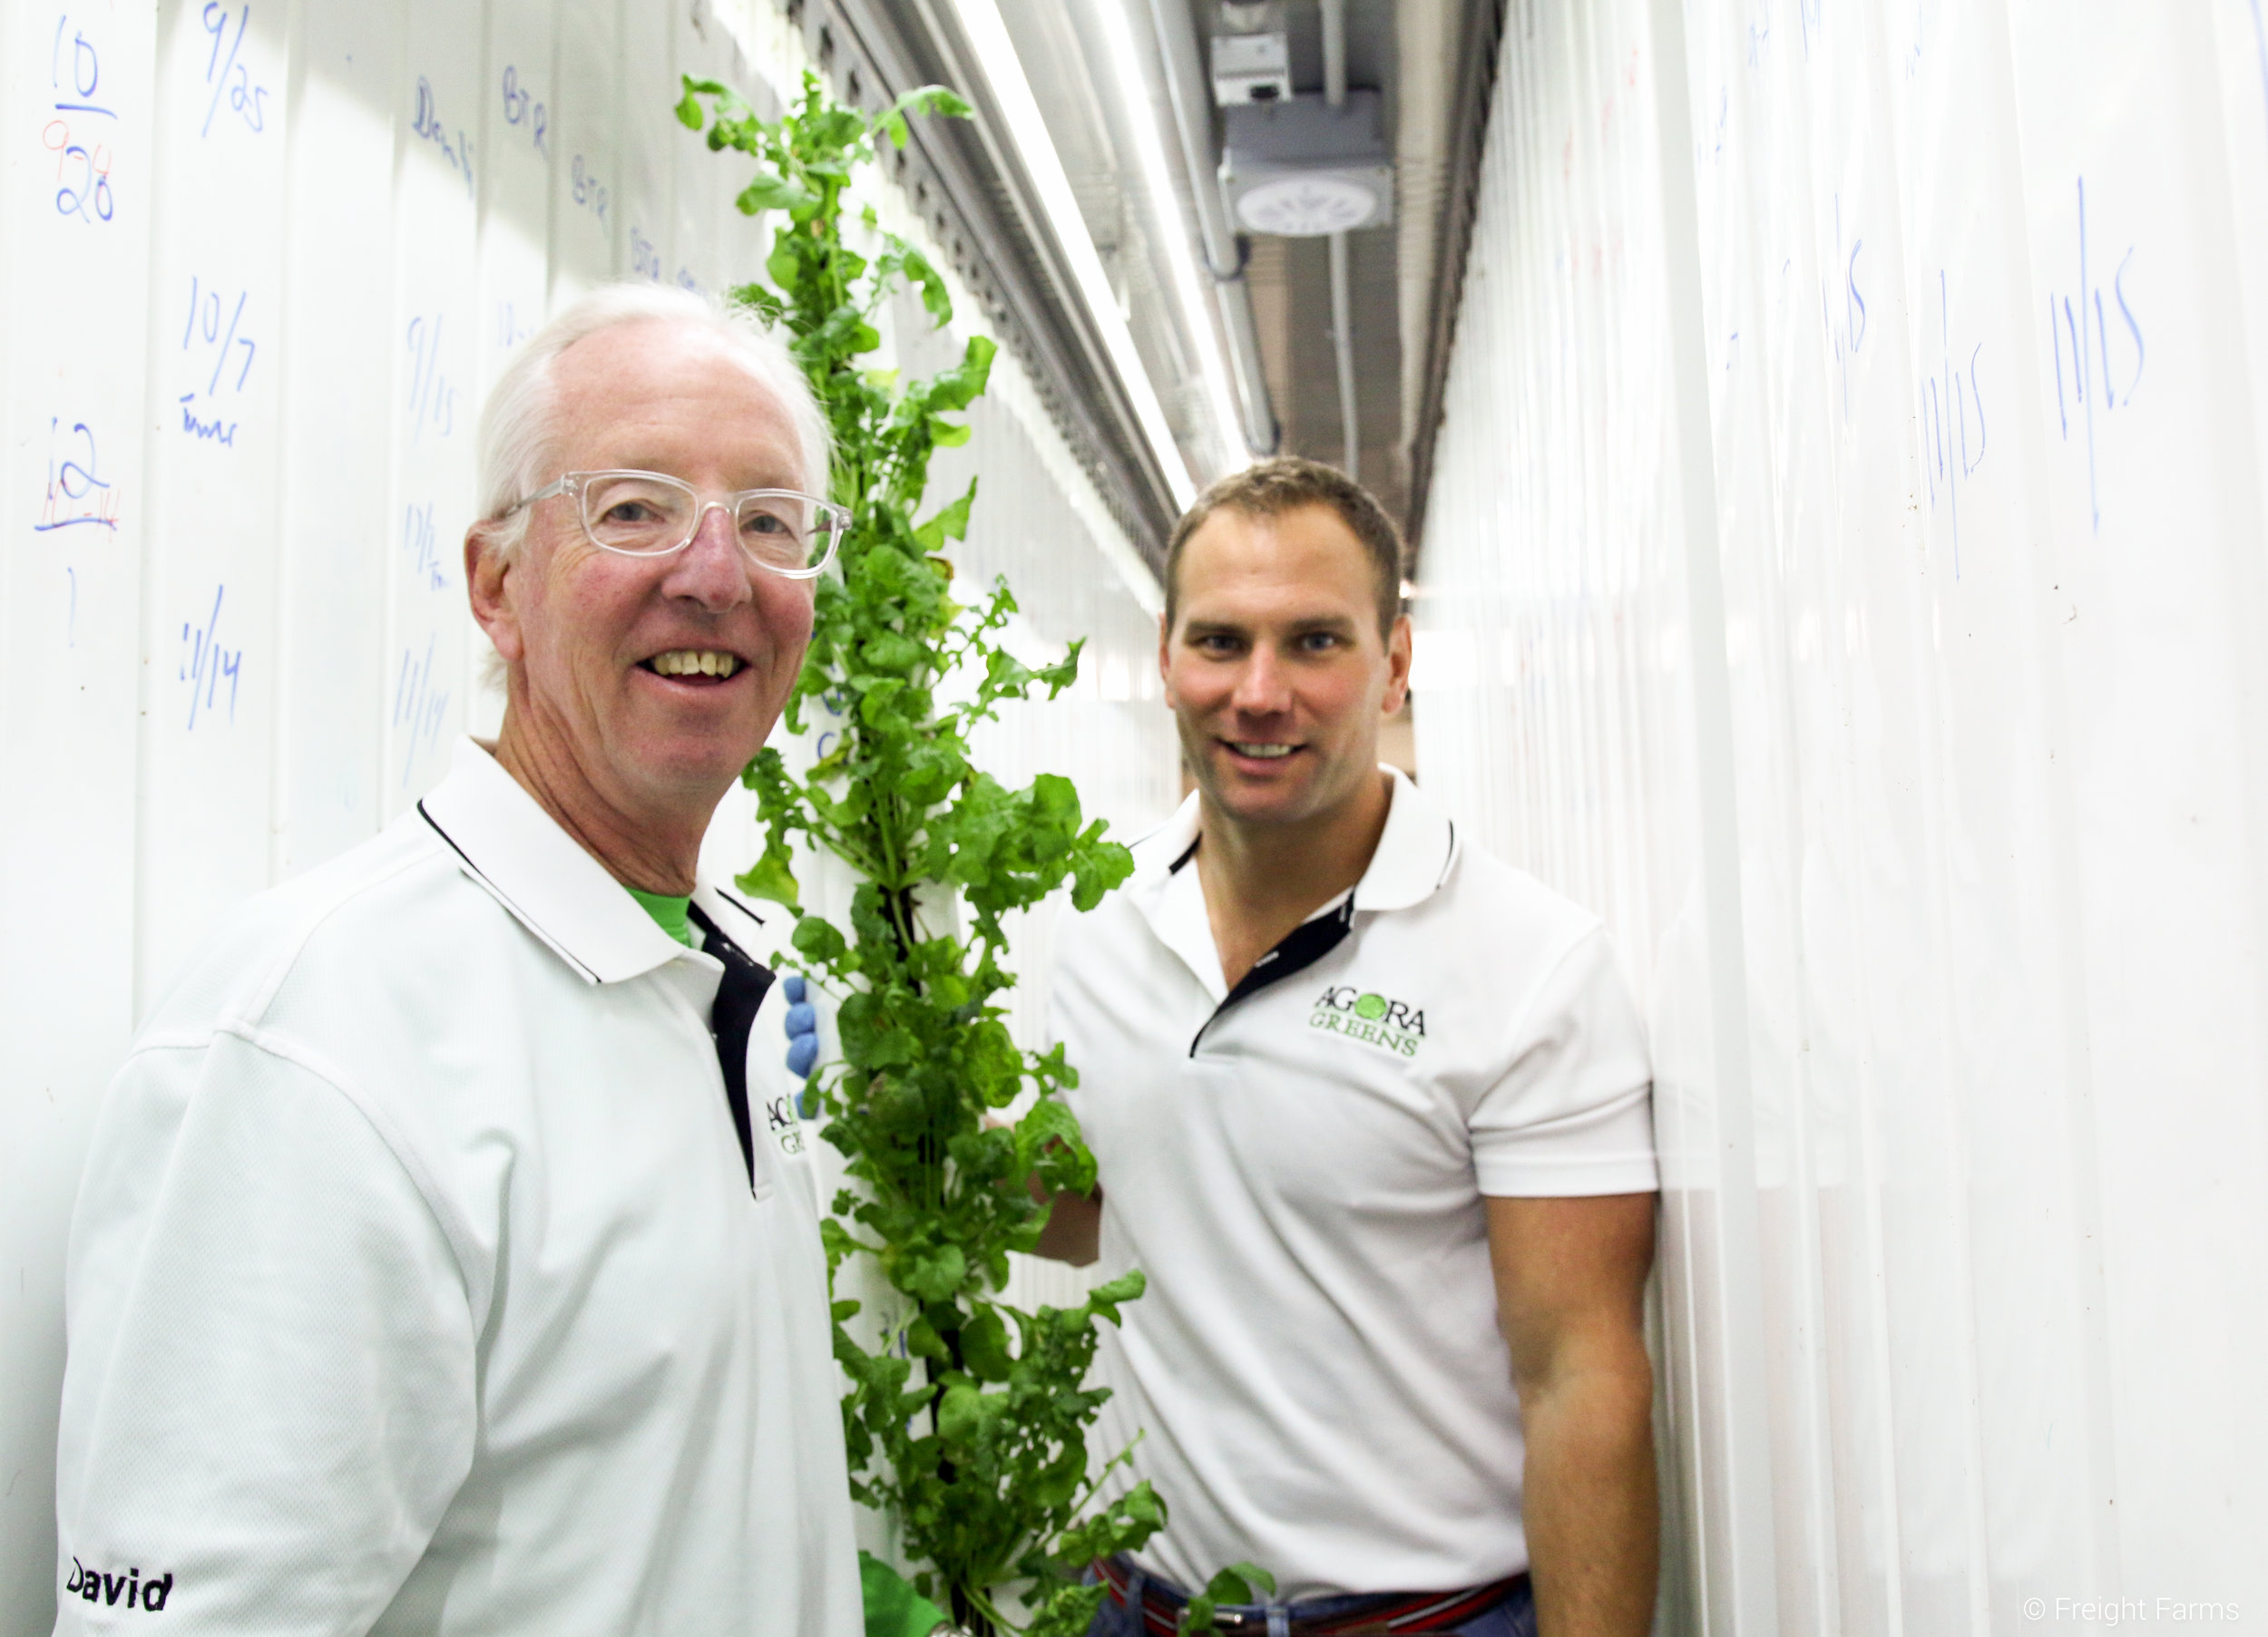 David (left) with Ian (right) inside their 2016 Leafy Green Machine™